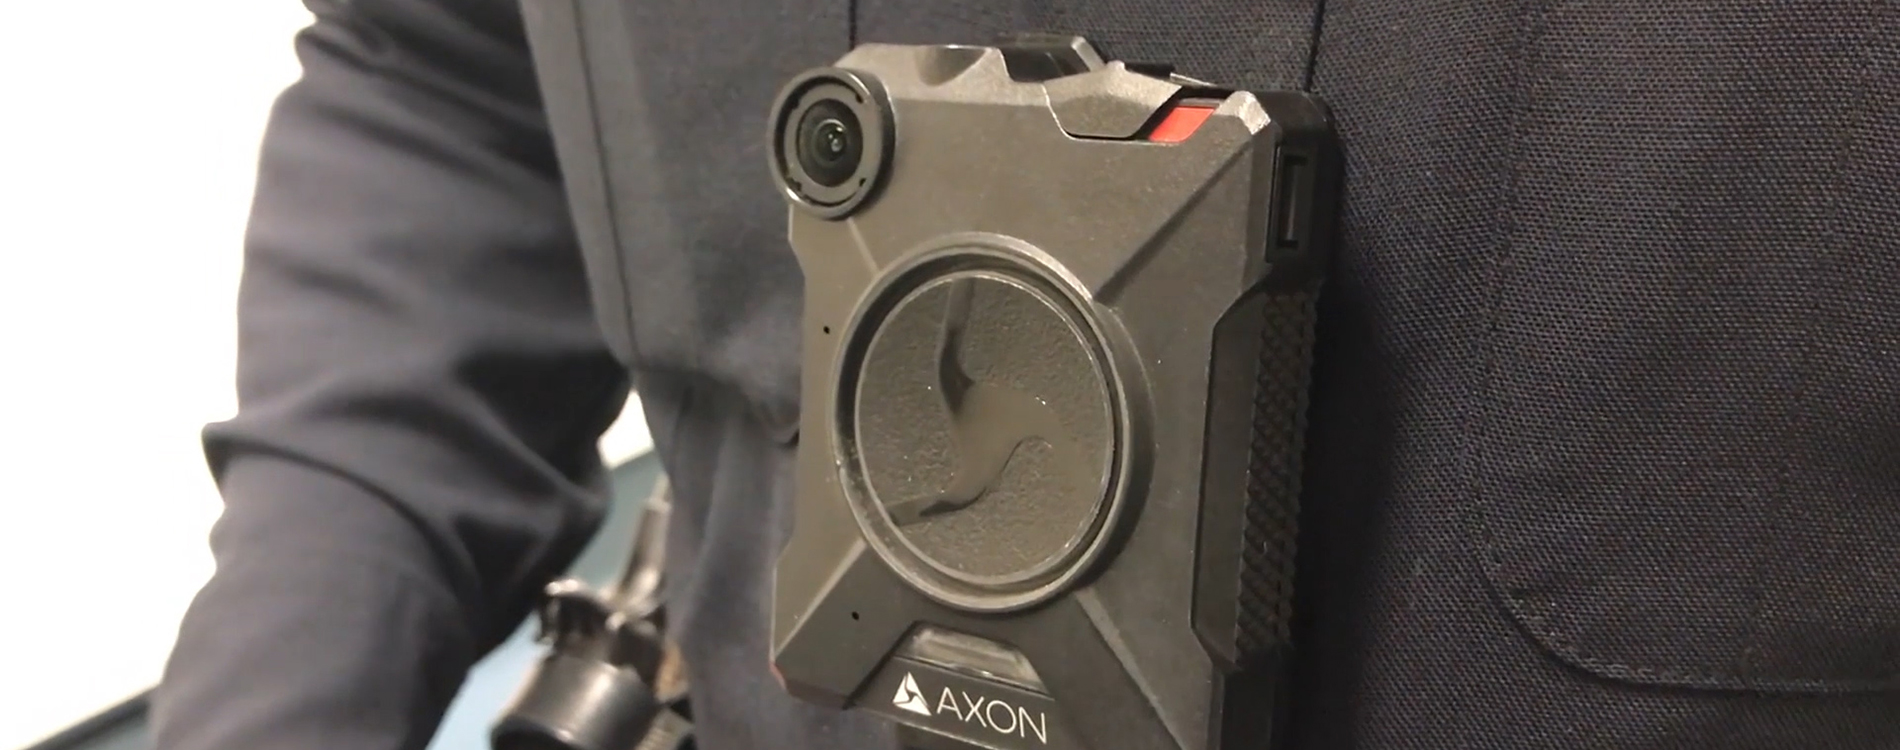 Close up view of body camera on police officer